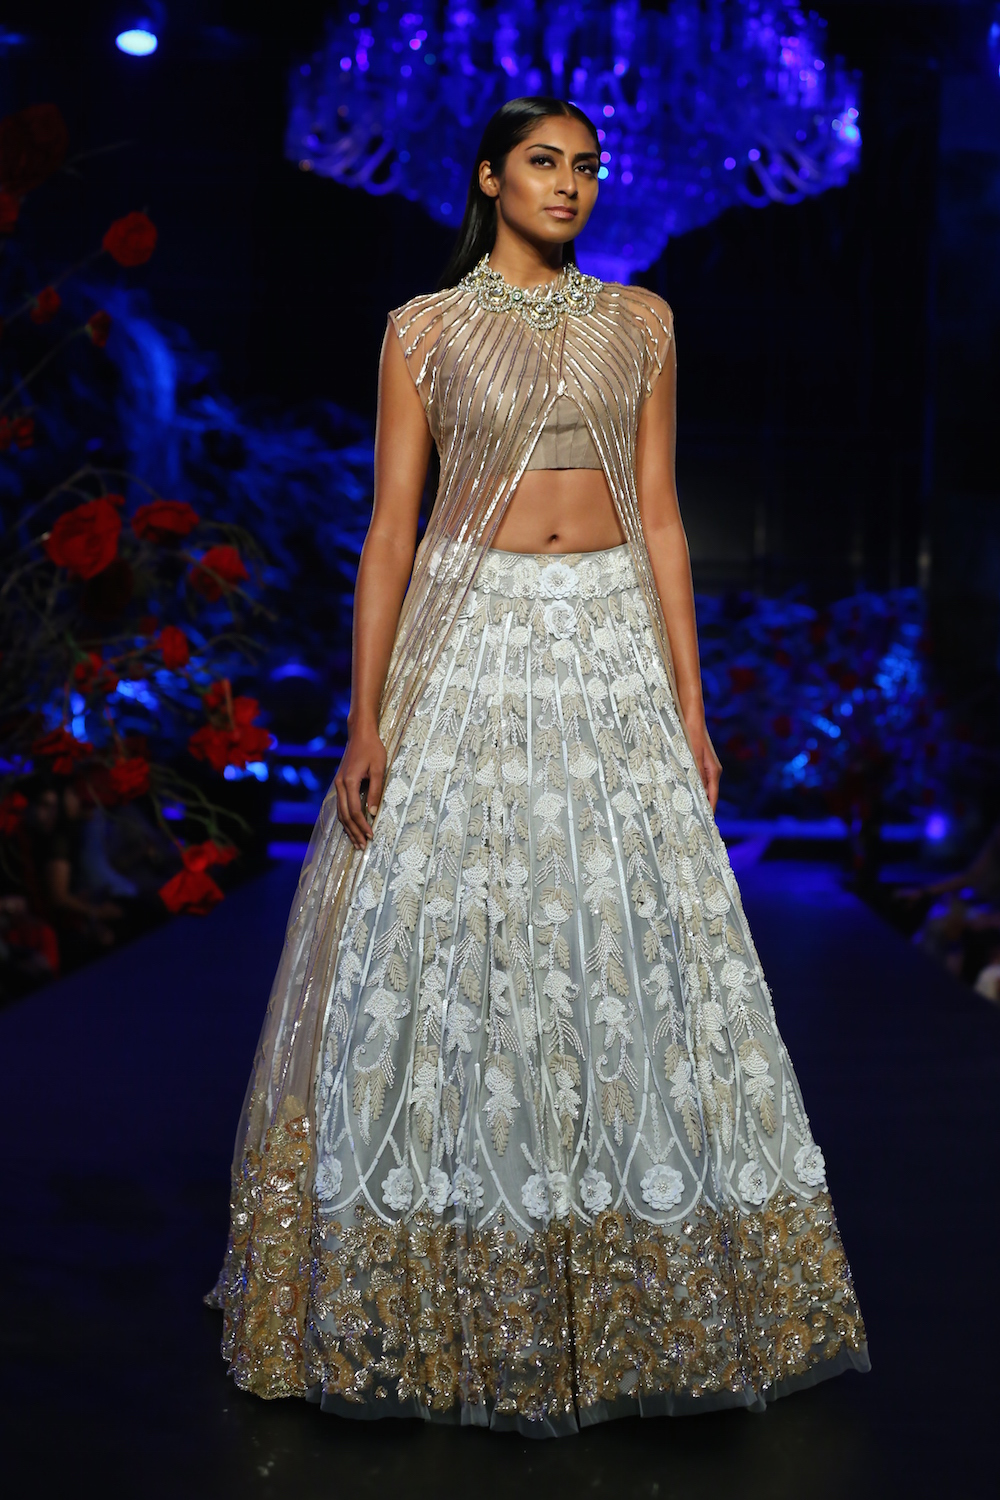 aaf1e4b69f ... Amazon India Couture Week 2015. Pale Blue Embroidered Lehenga Skirt  with Heavy Floral Border, Onion Pink Crop top & Onion